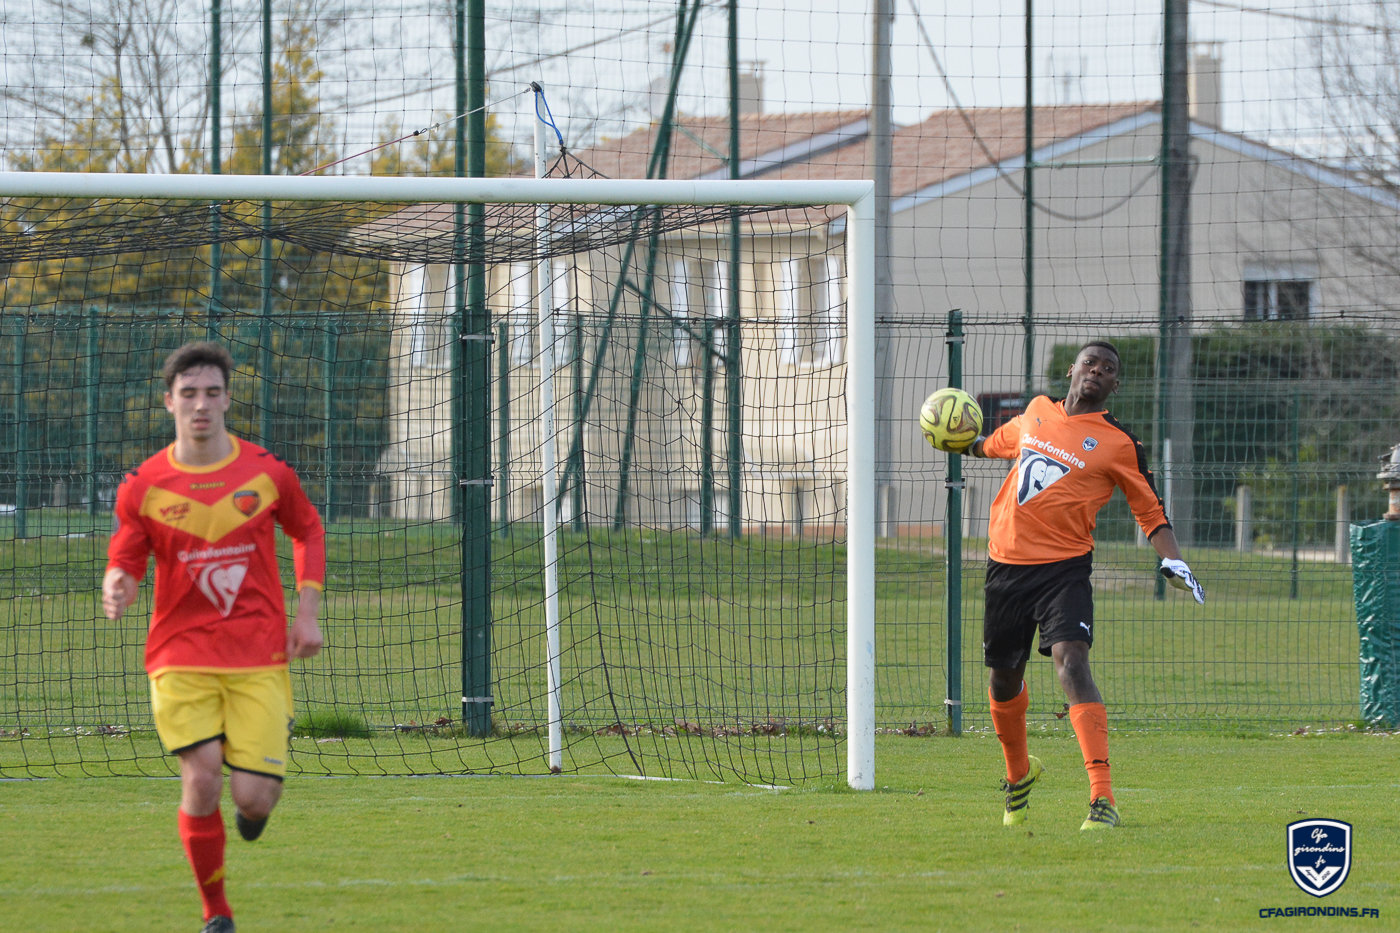 Cfa Girondins : Over Mandanda - « Intégrer le plus vite possible l'effectif professionnel » - Formation Girondins